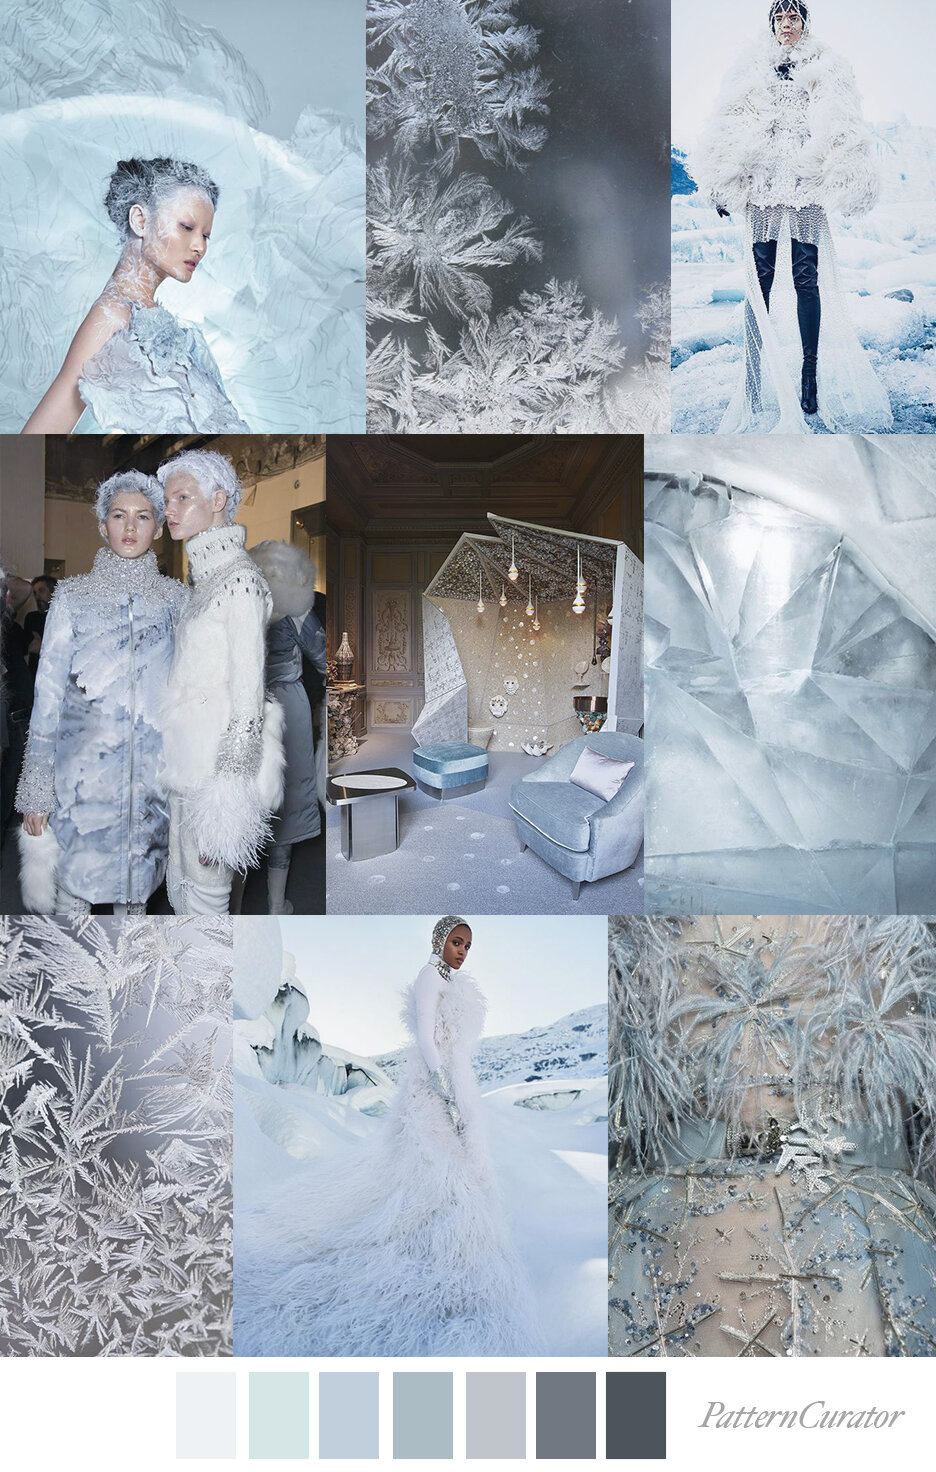 ICE+CRYSTALS-FW22-SITE